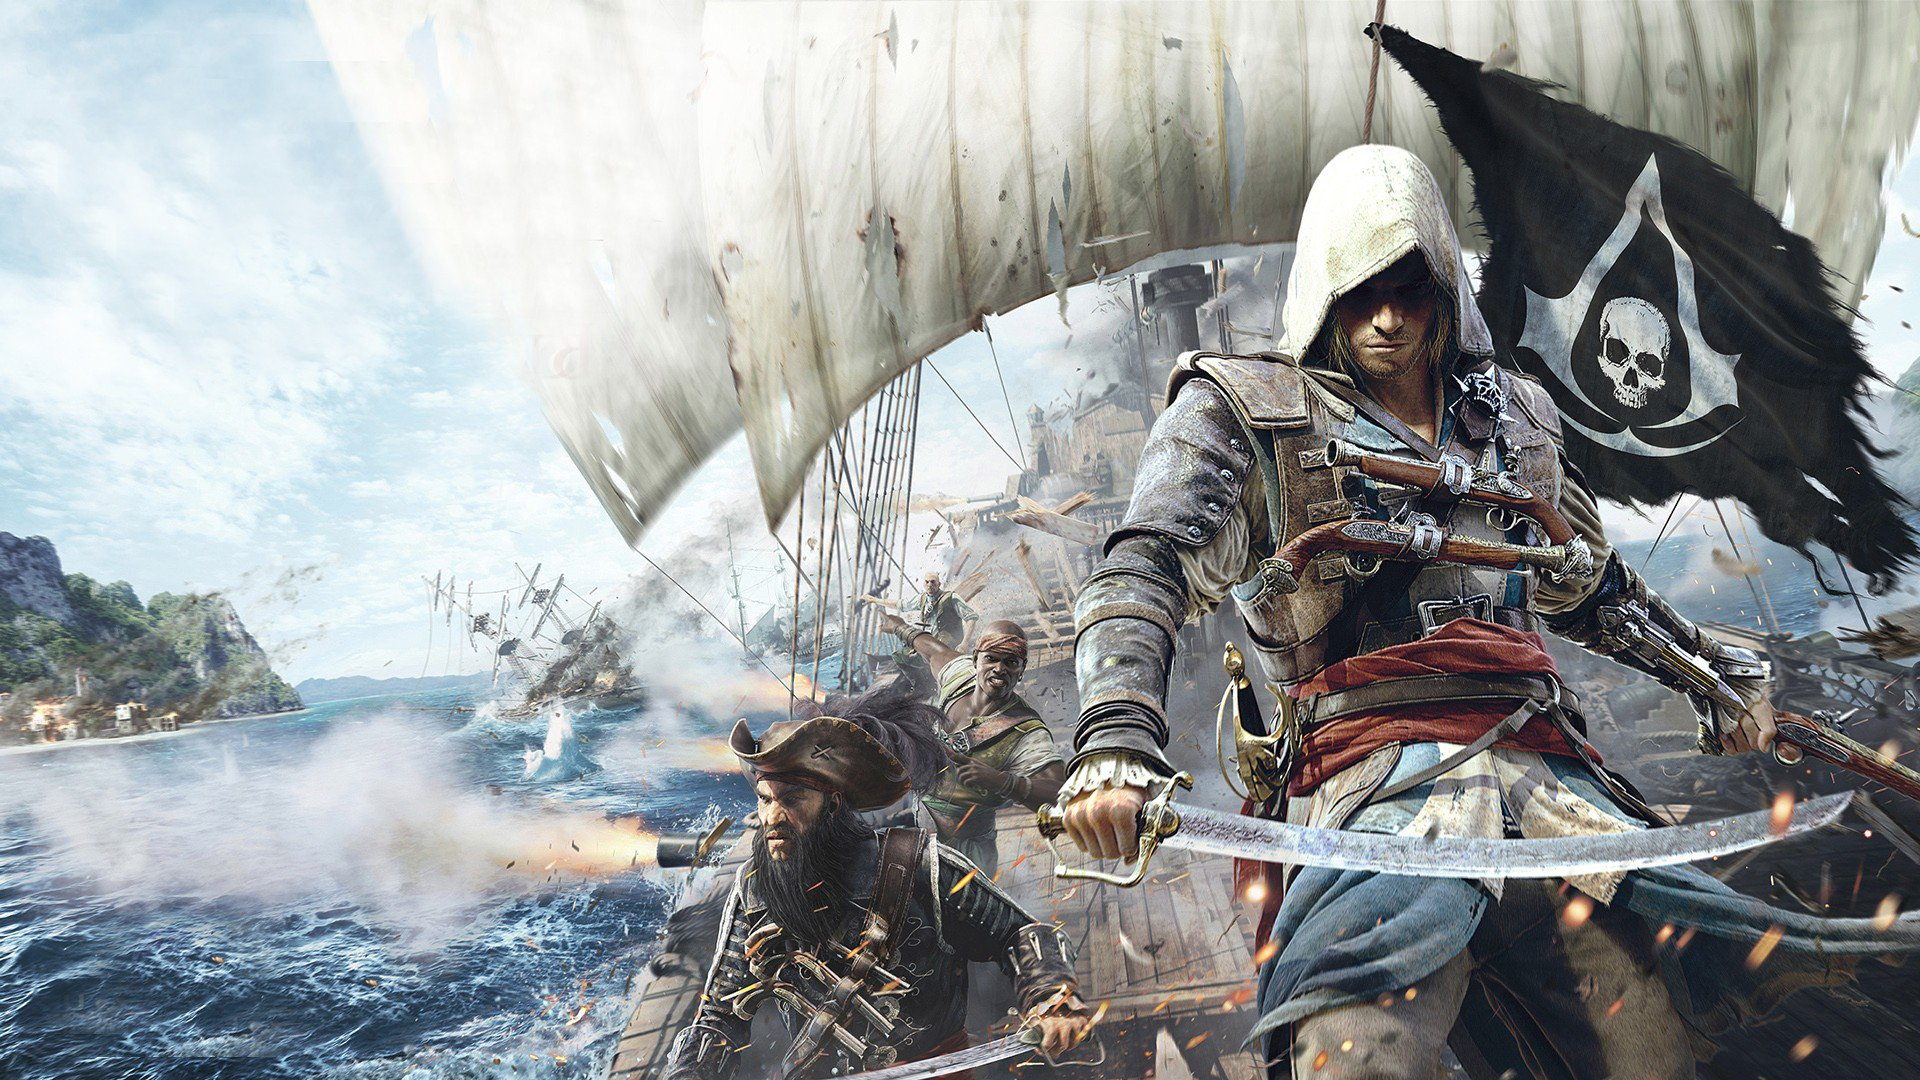 2048x1152 Assassins Creed 4 Black Flag 2048x1152 ...